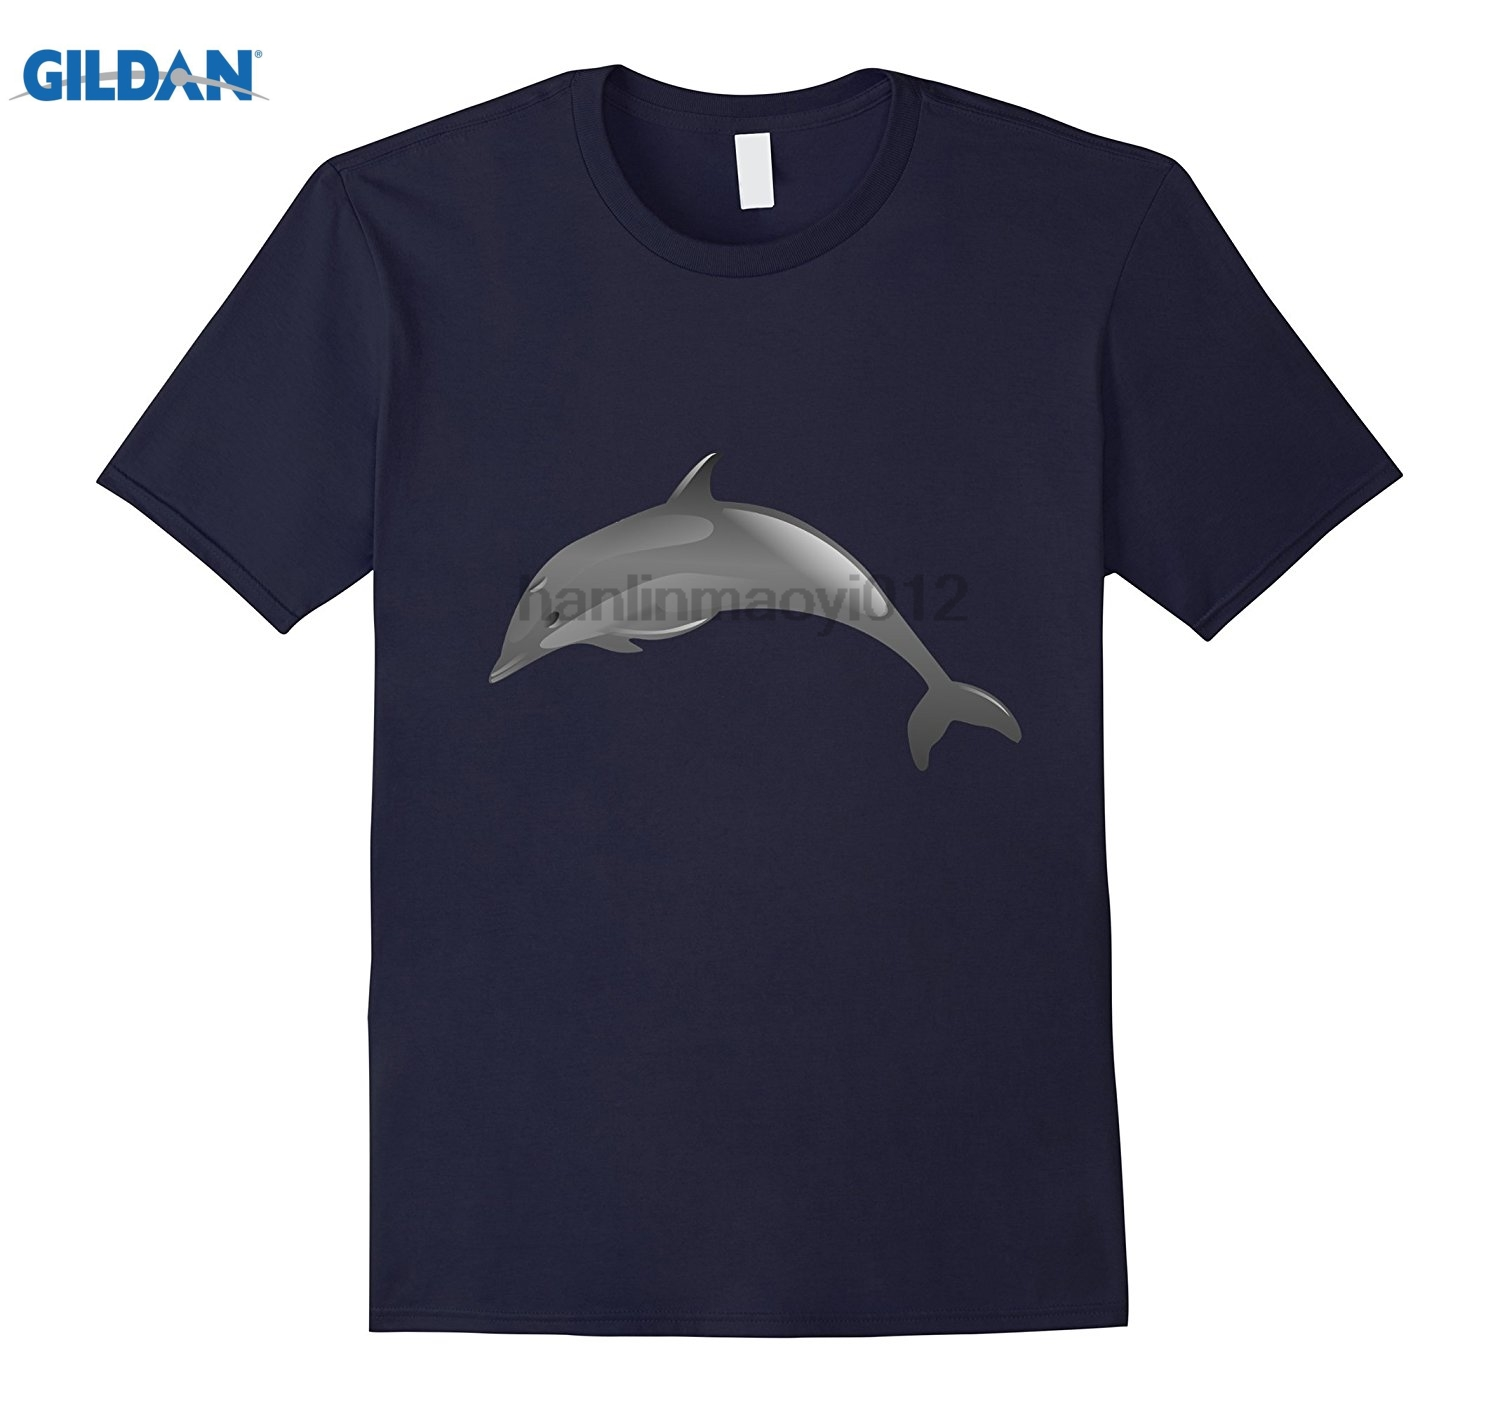 GILDAN Dolphin Mammal Marine Ocean t-shirt 2018 New Hot Summer GILDAN T-shirt 100% Cotto ...